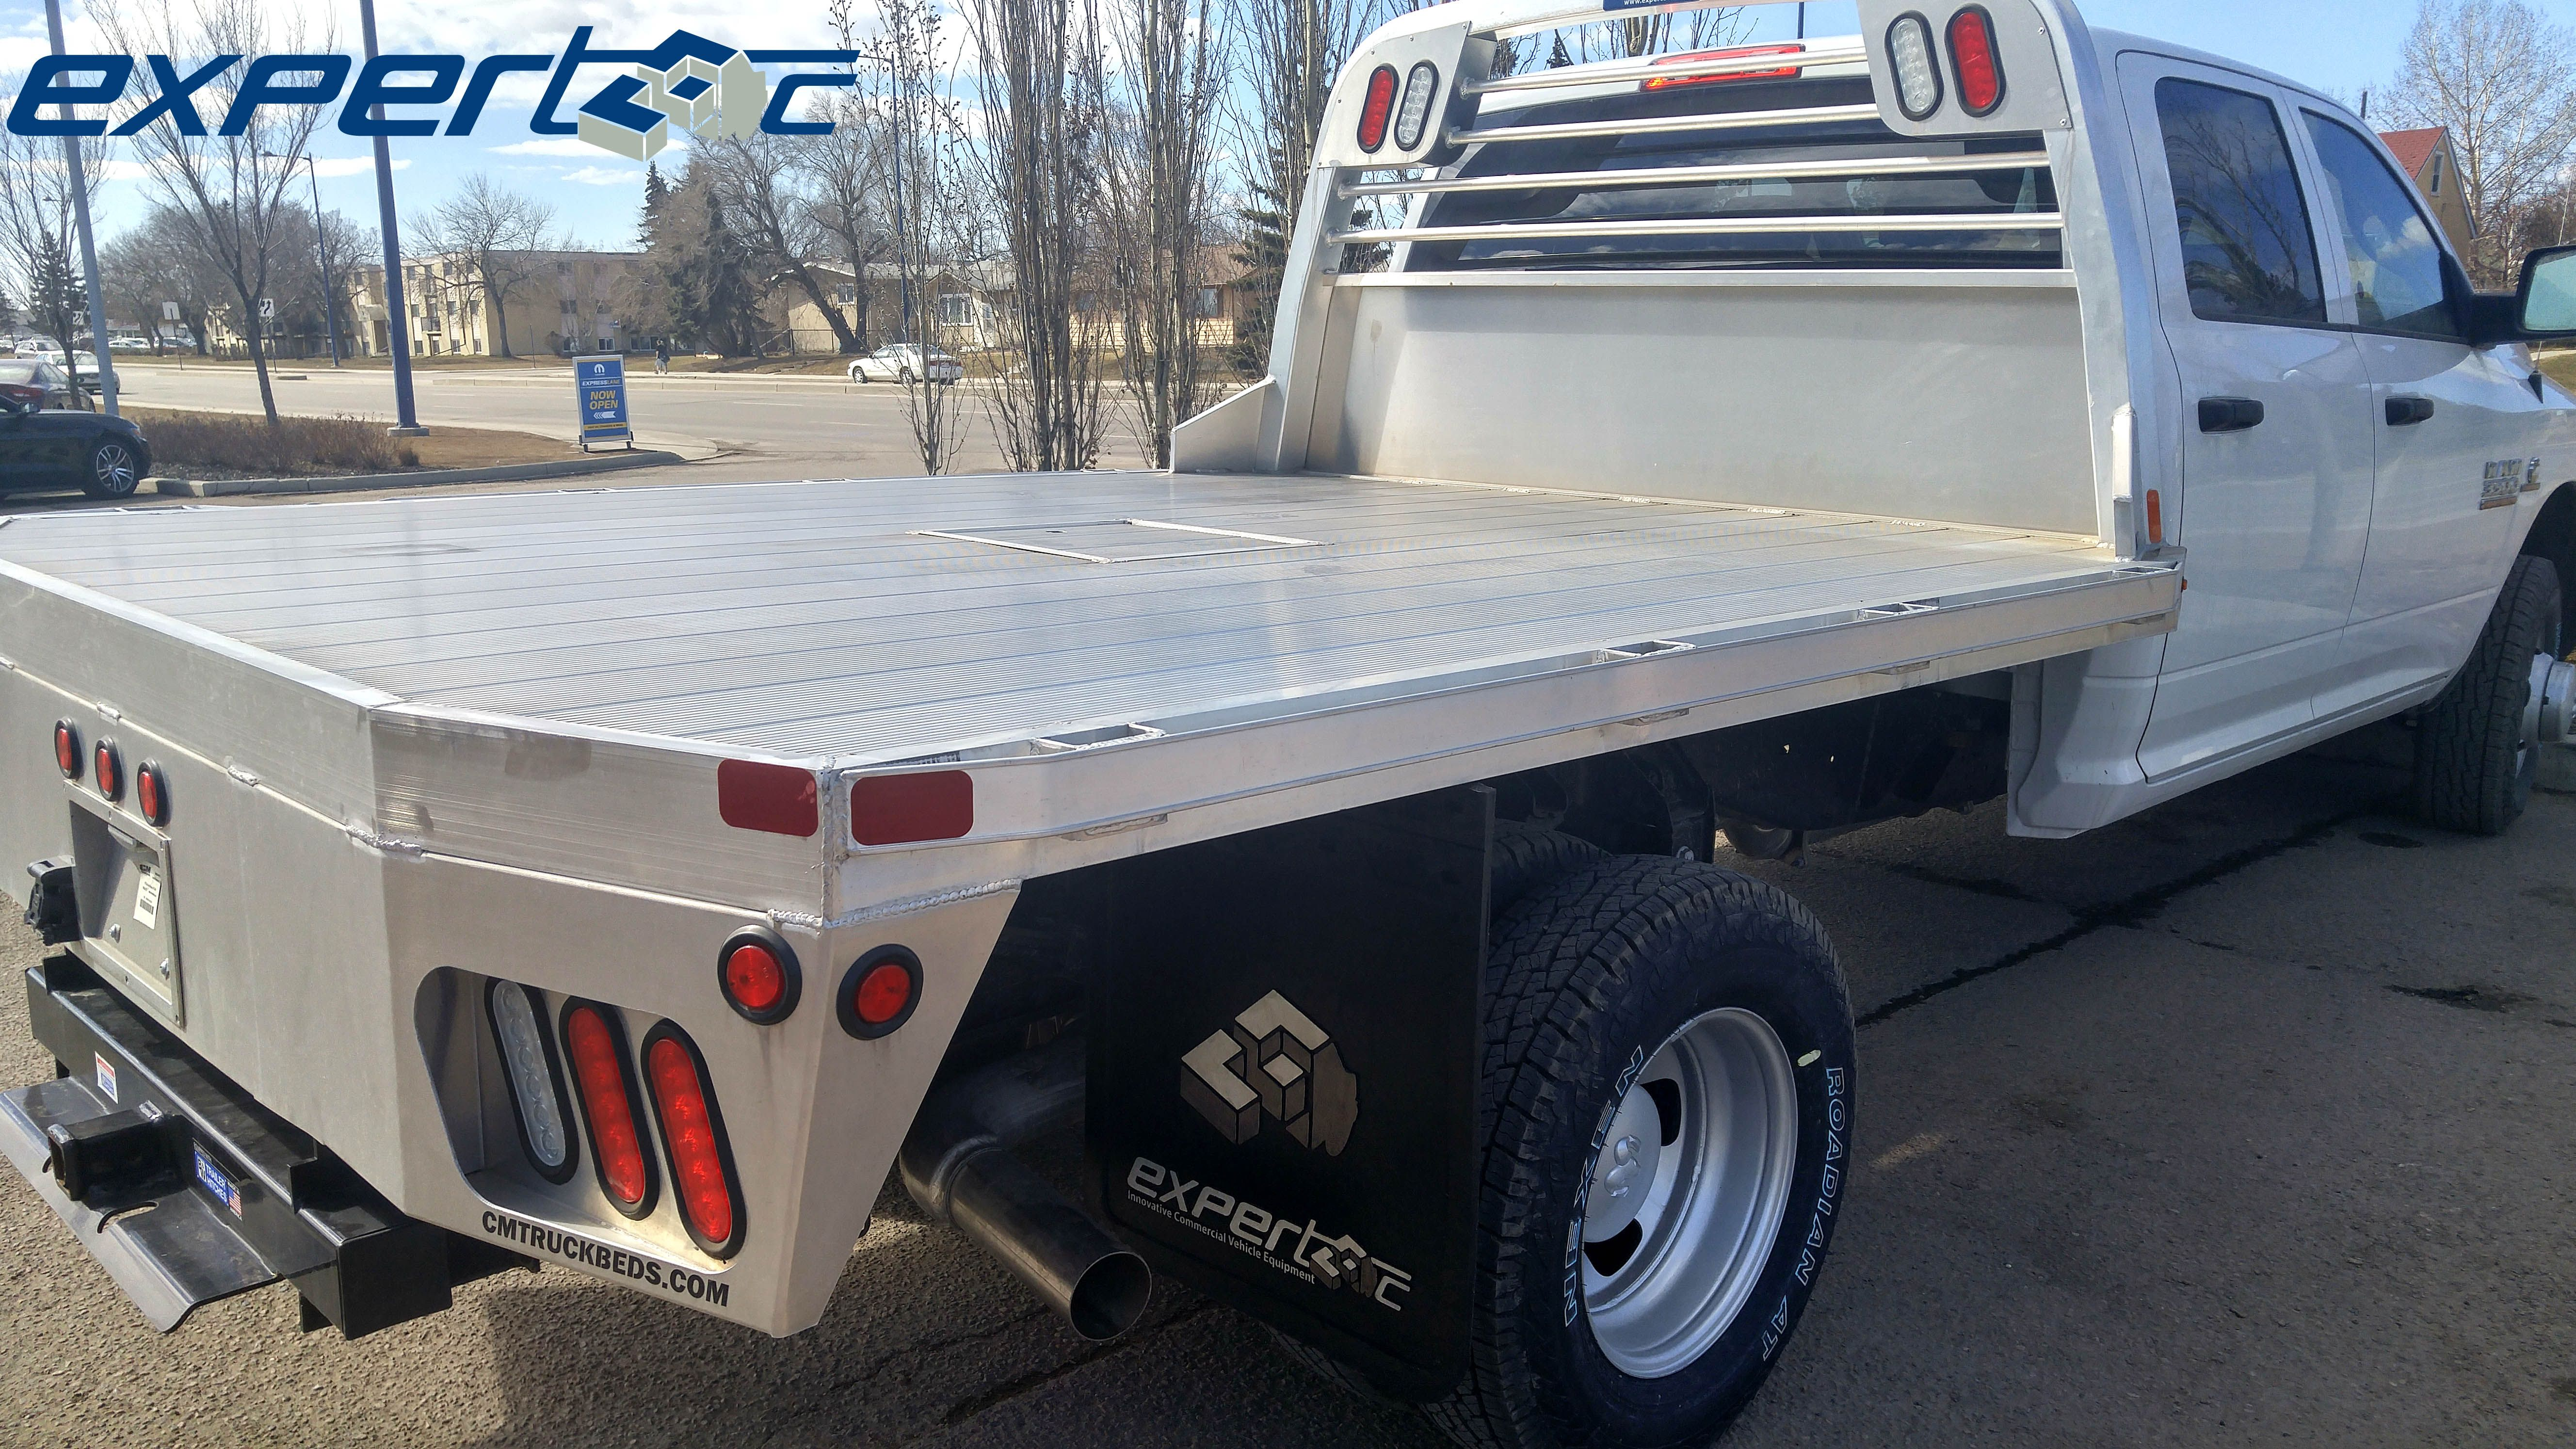 Just finished installing and delivering this aluminum flat ... on ford wiring, cm truck beds in texas, cm flat beds for pickup trucks,